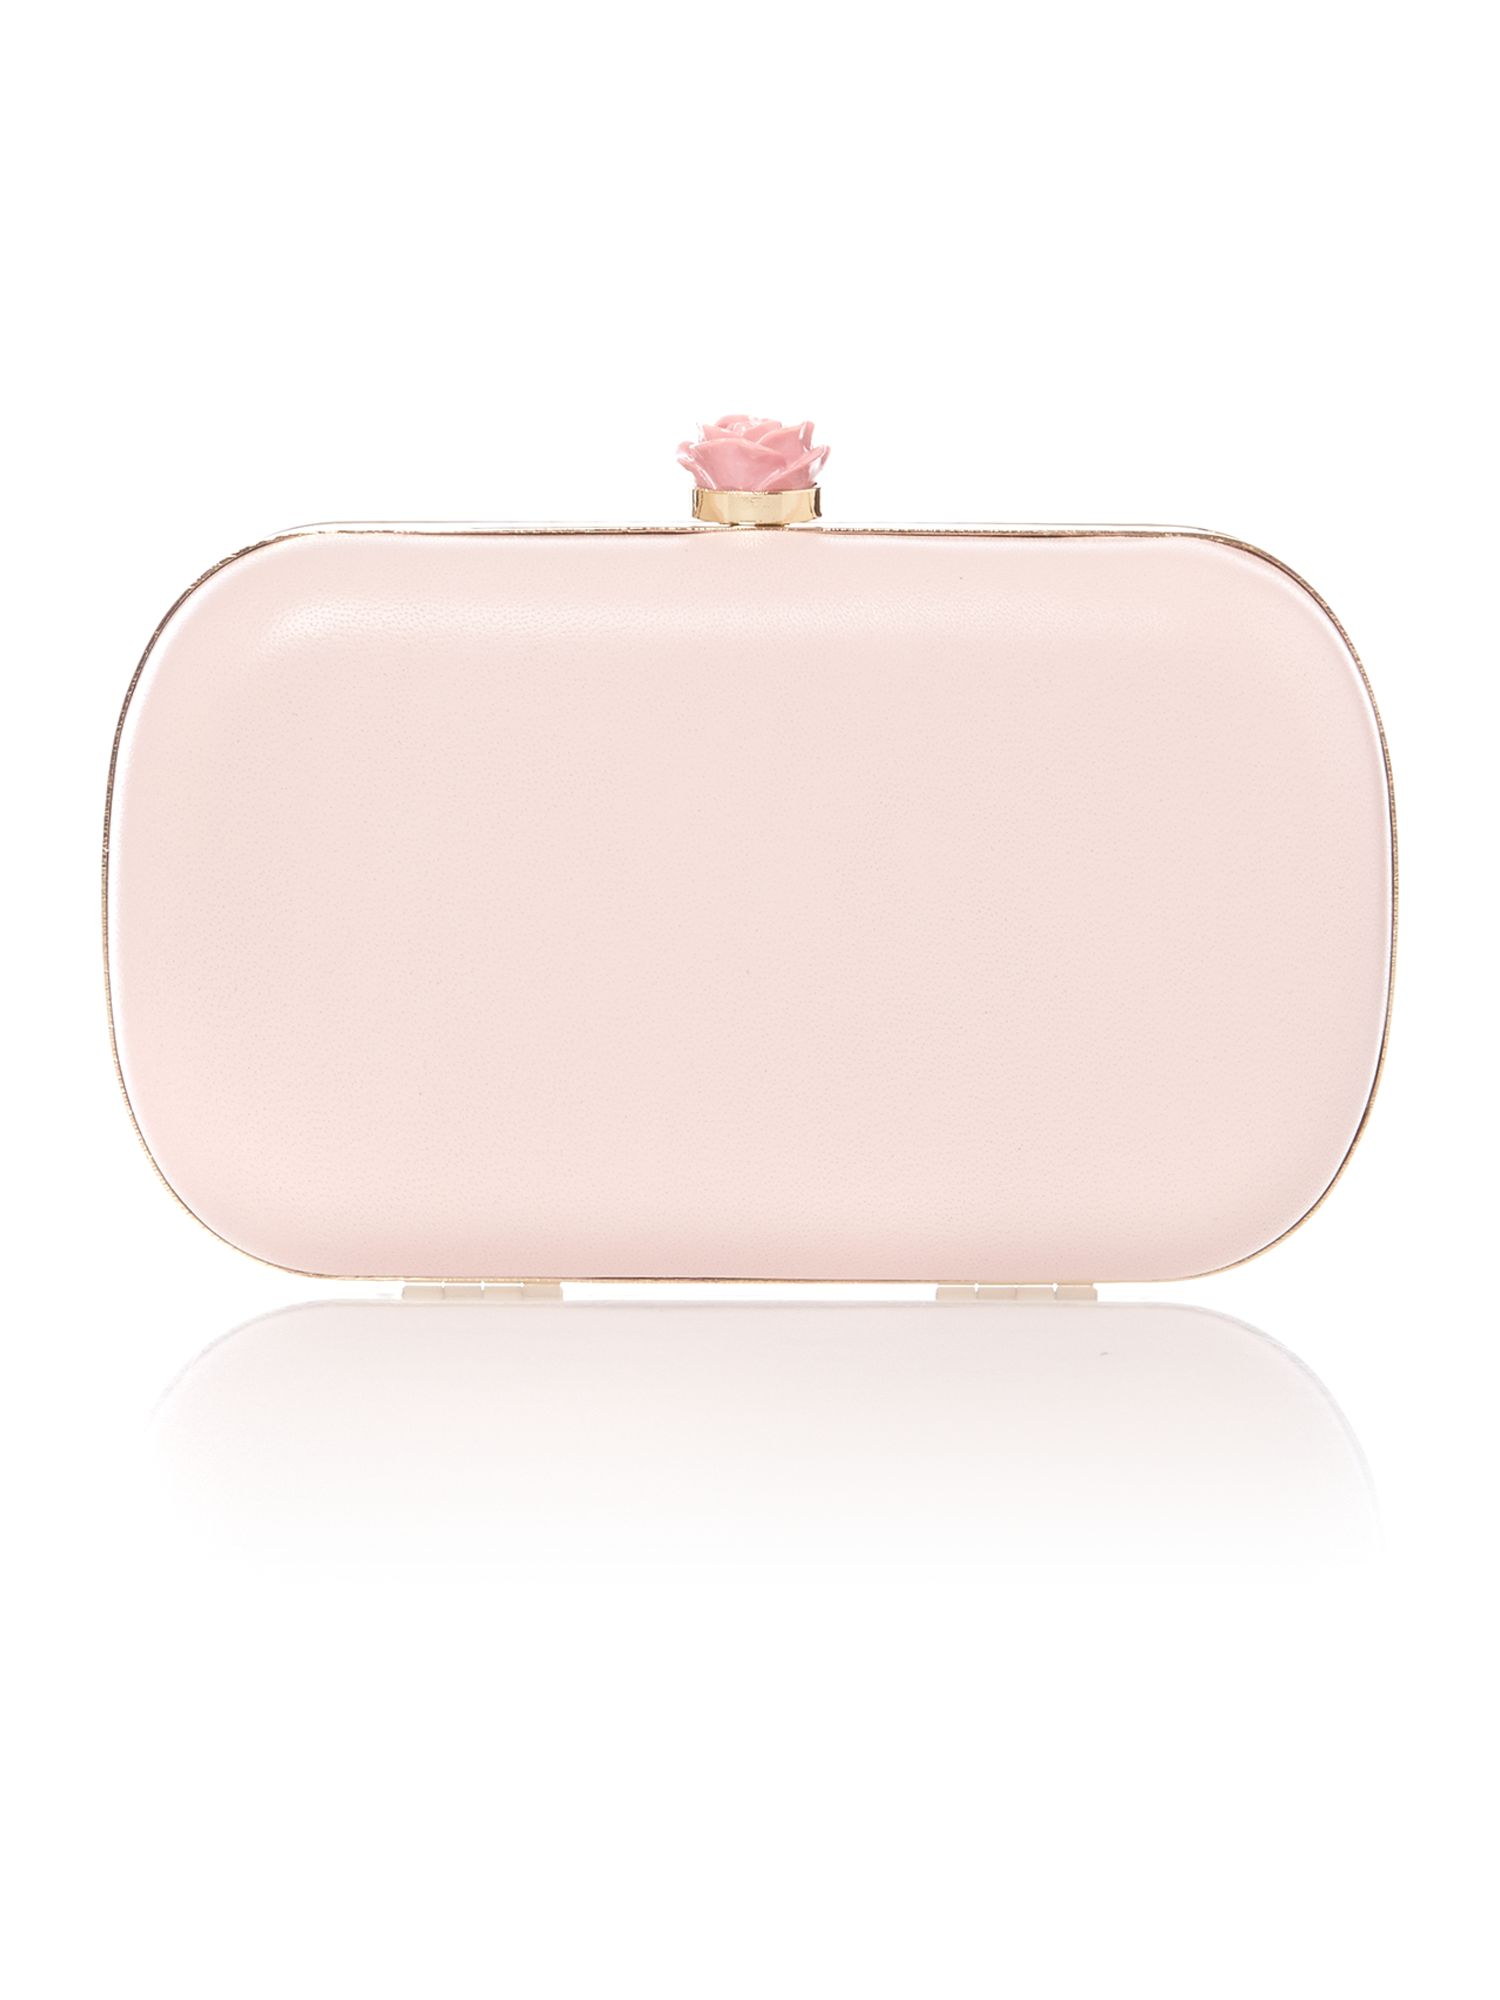 Minaudiere pink cross body bag